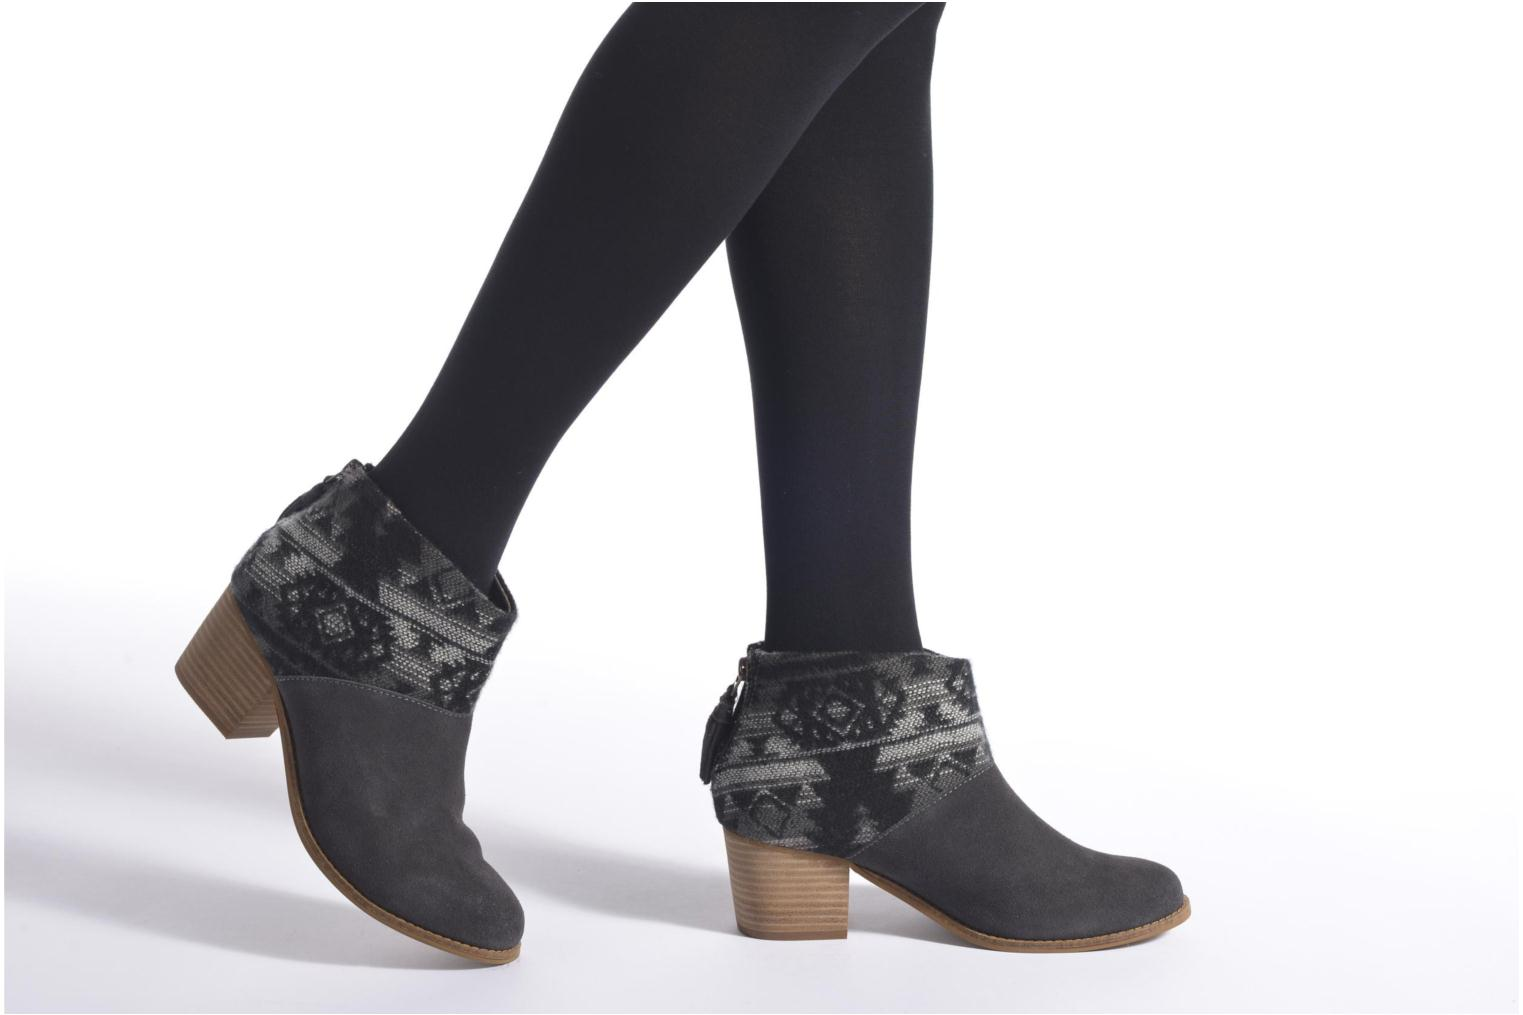 Leila bootie Black Suede Dotted